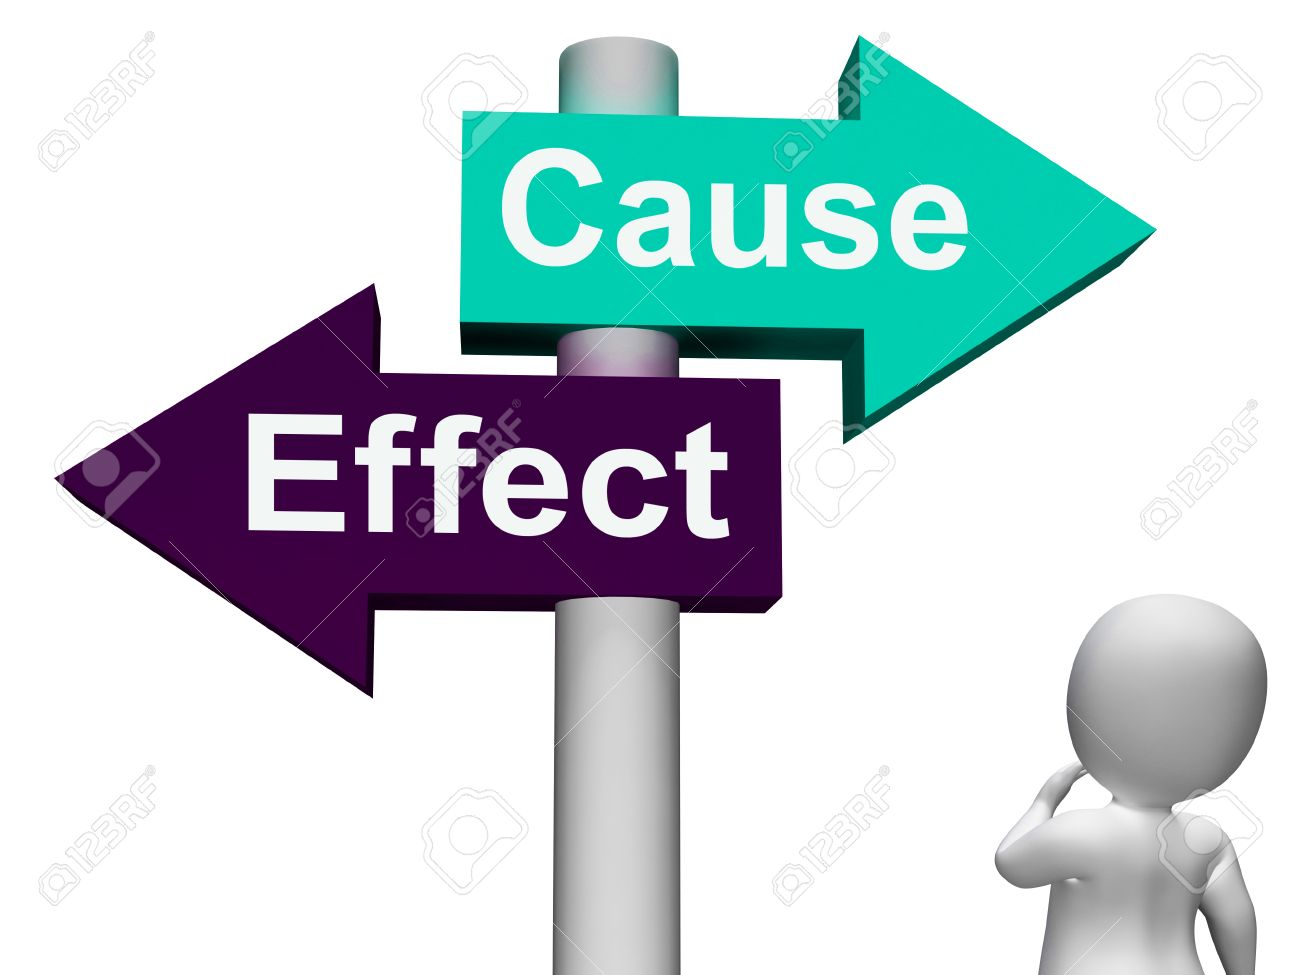 Cause Effect Signpost Meaning Consequence Action Or Reaction